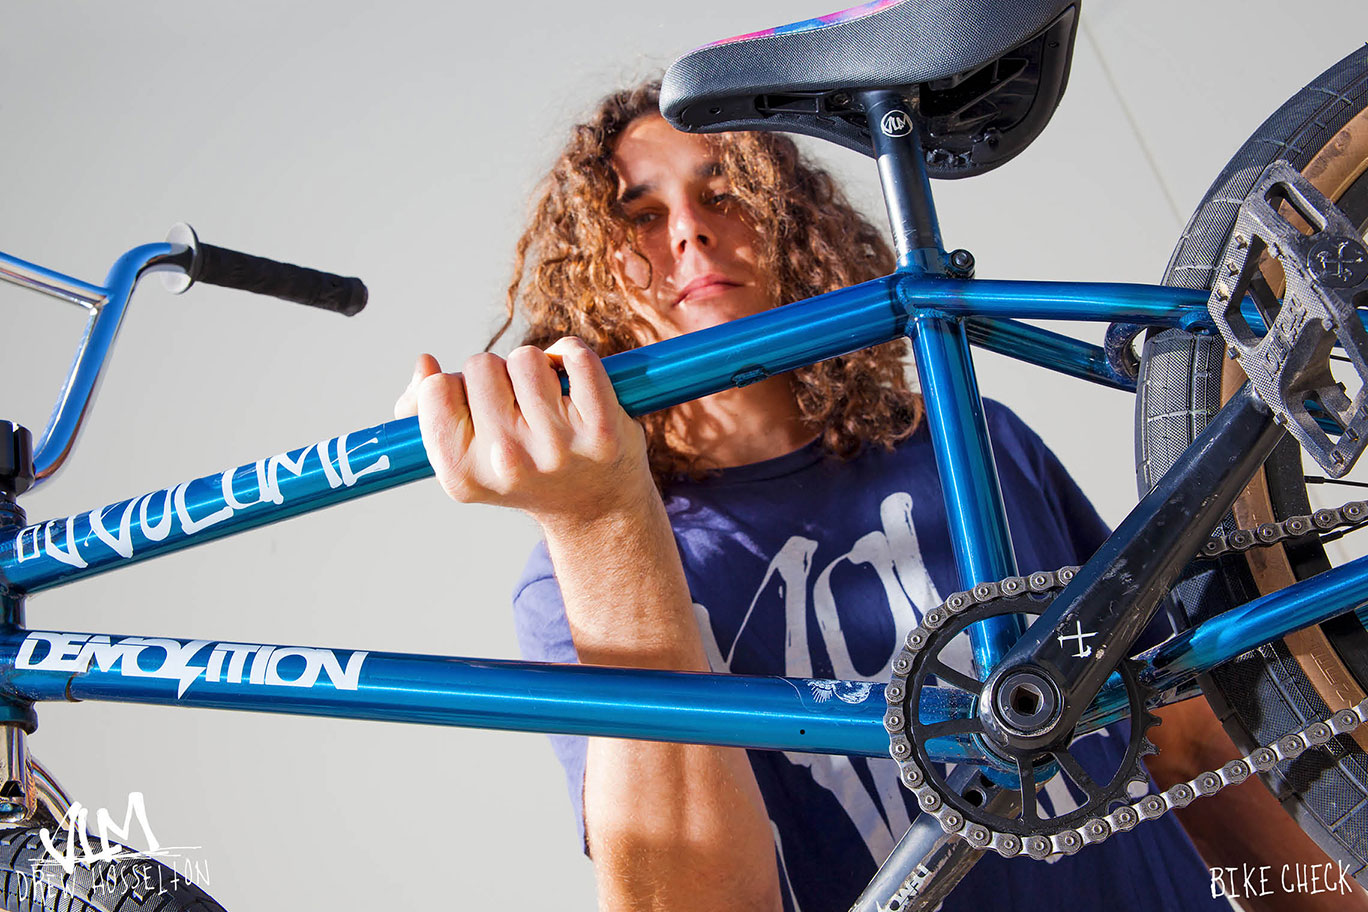 Hoss Bike Check: Weird Al Curl